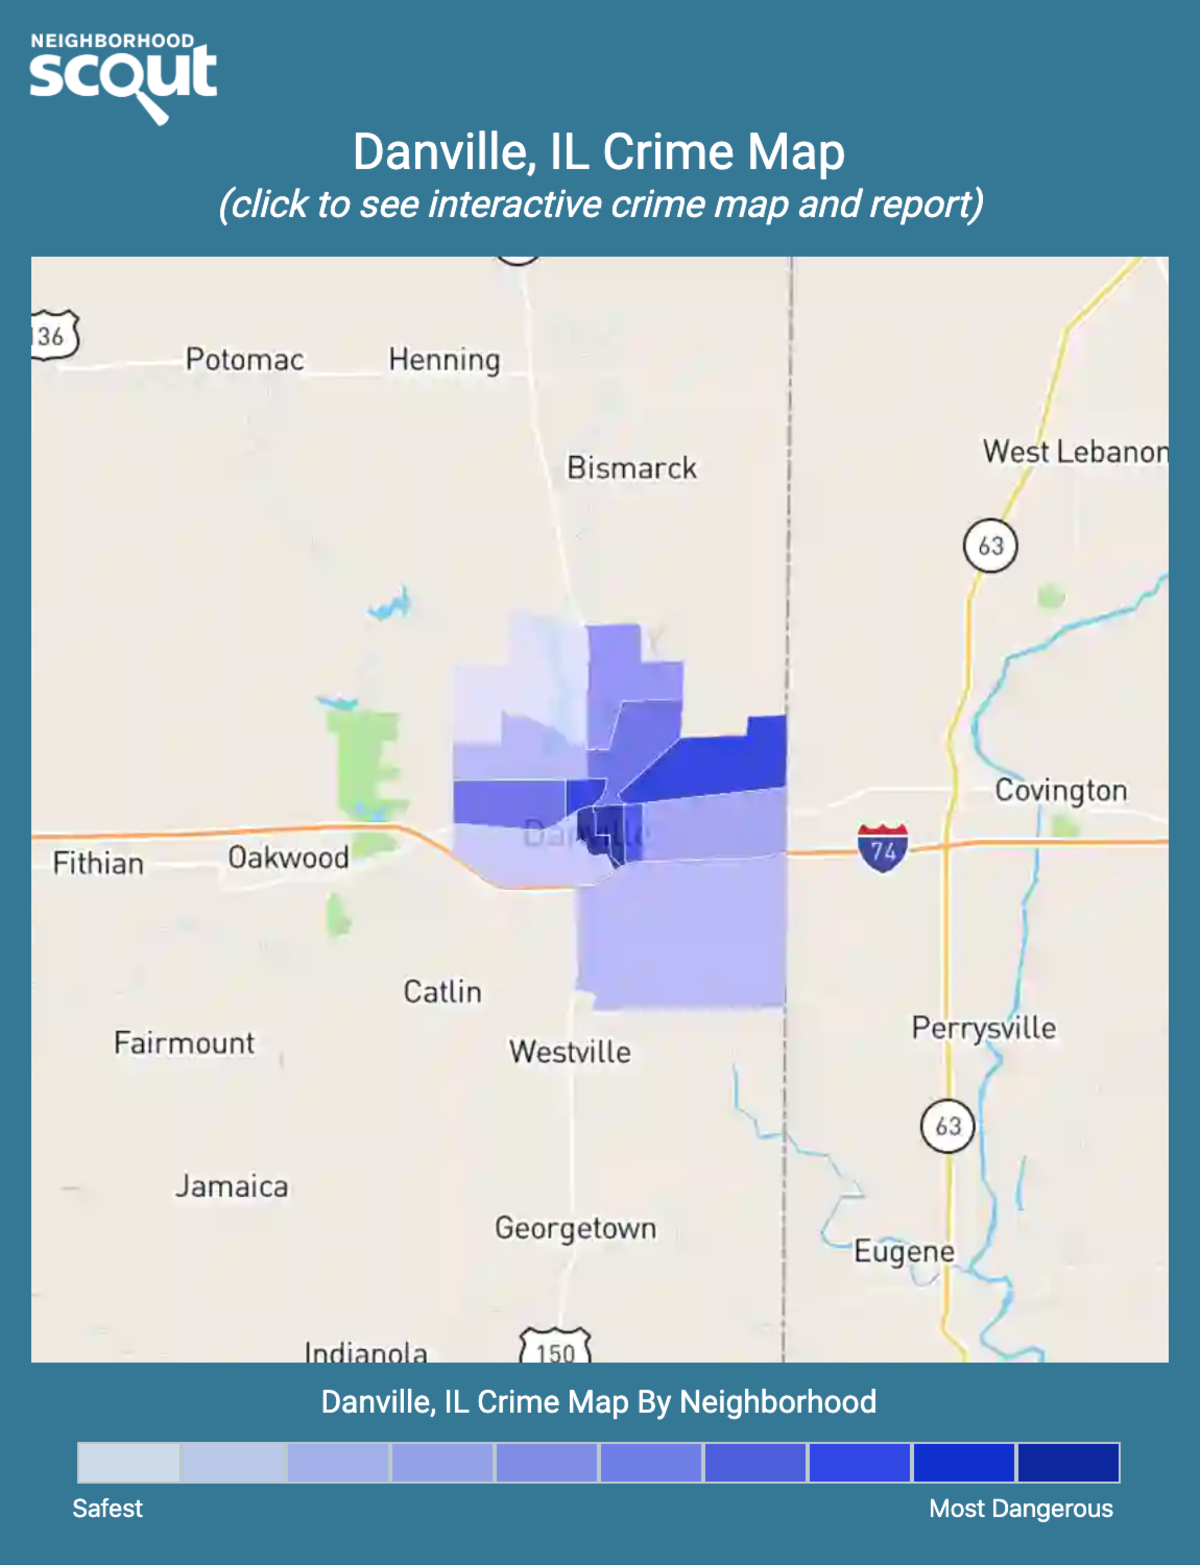 Danville, Illinois crime map